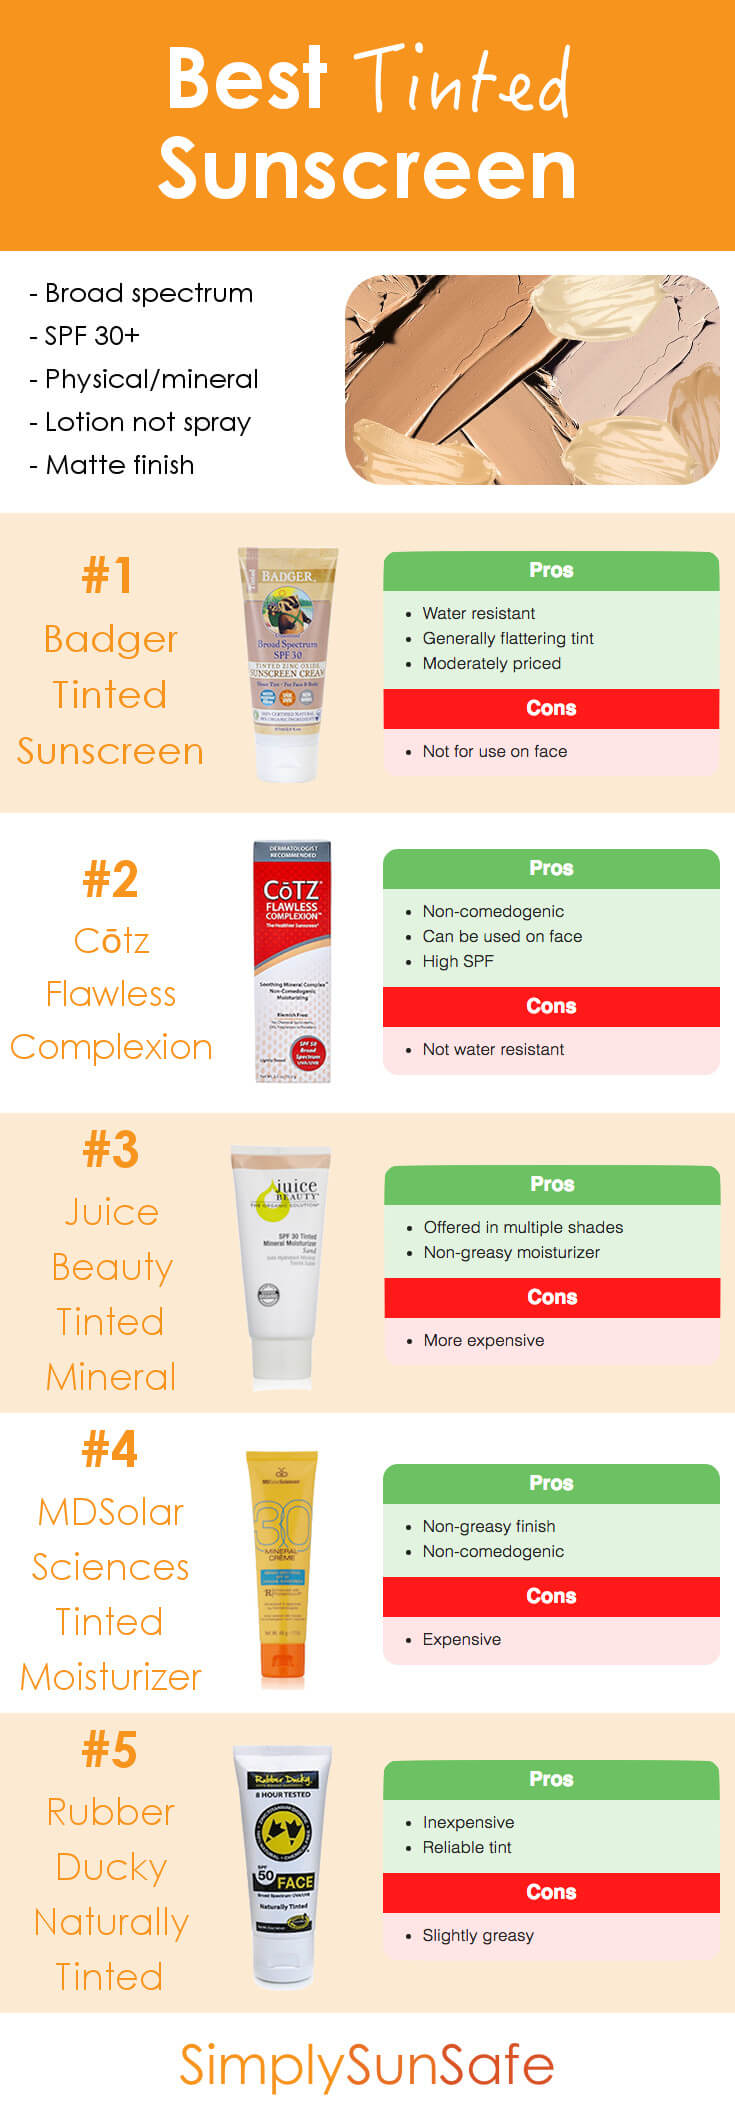 Best Tinted Sunscreen Pinterest